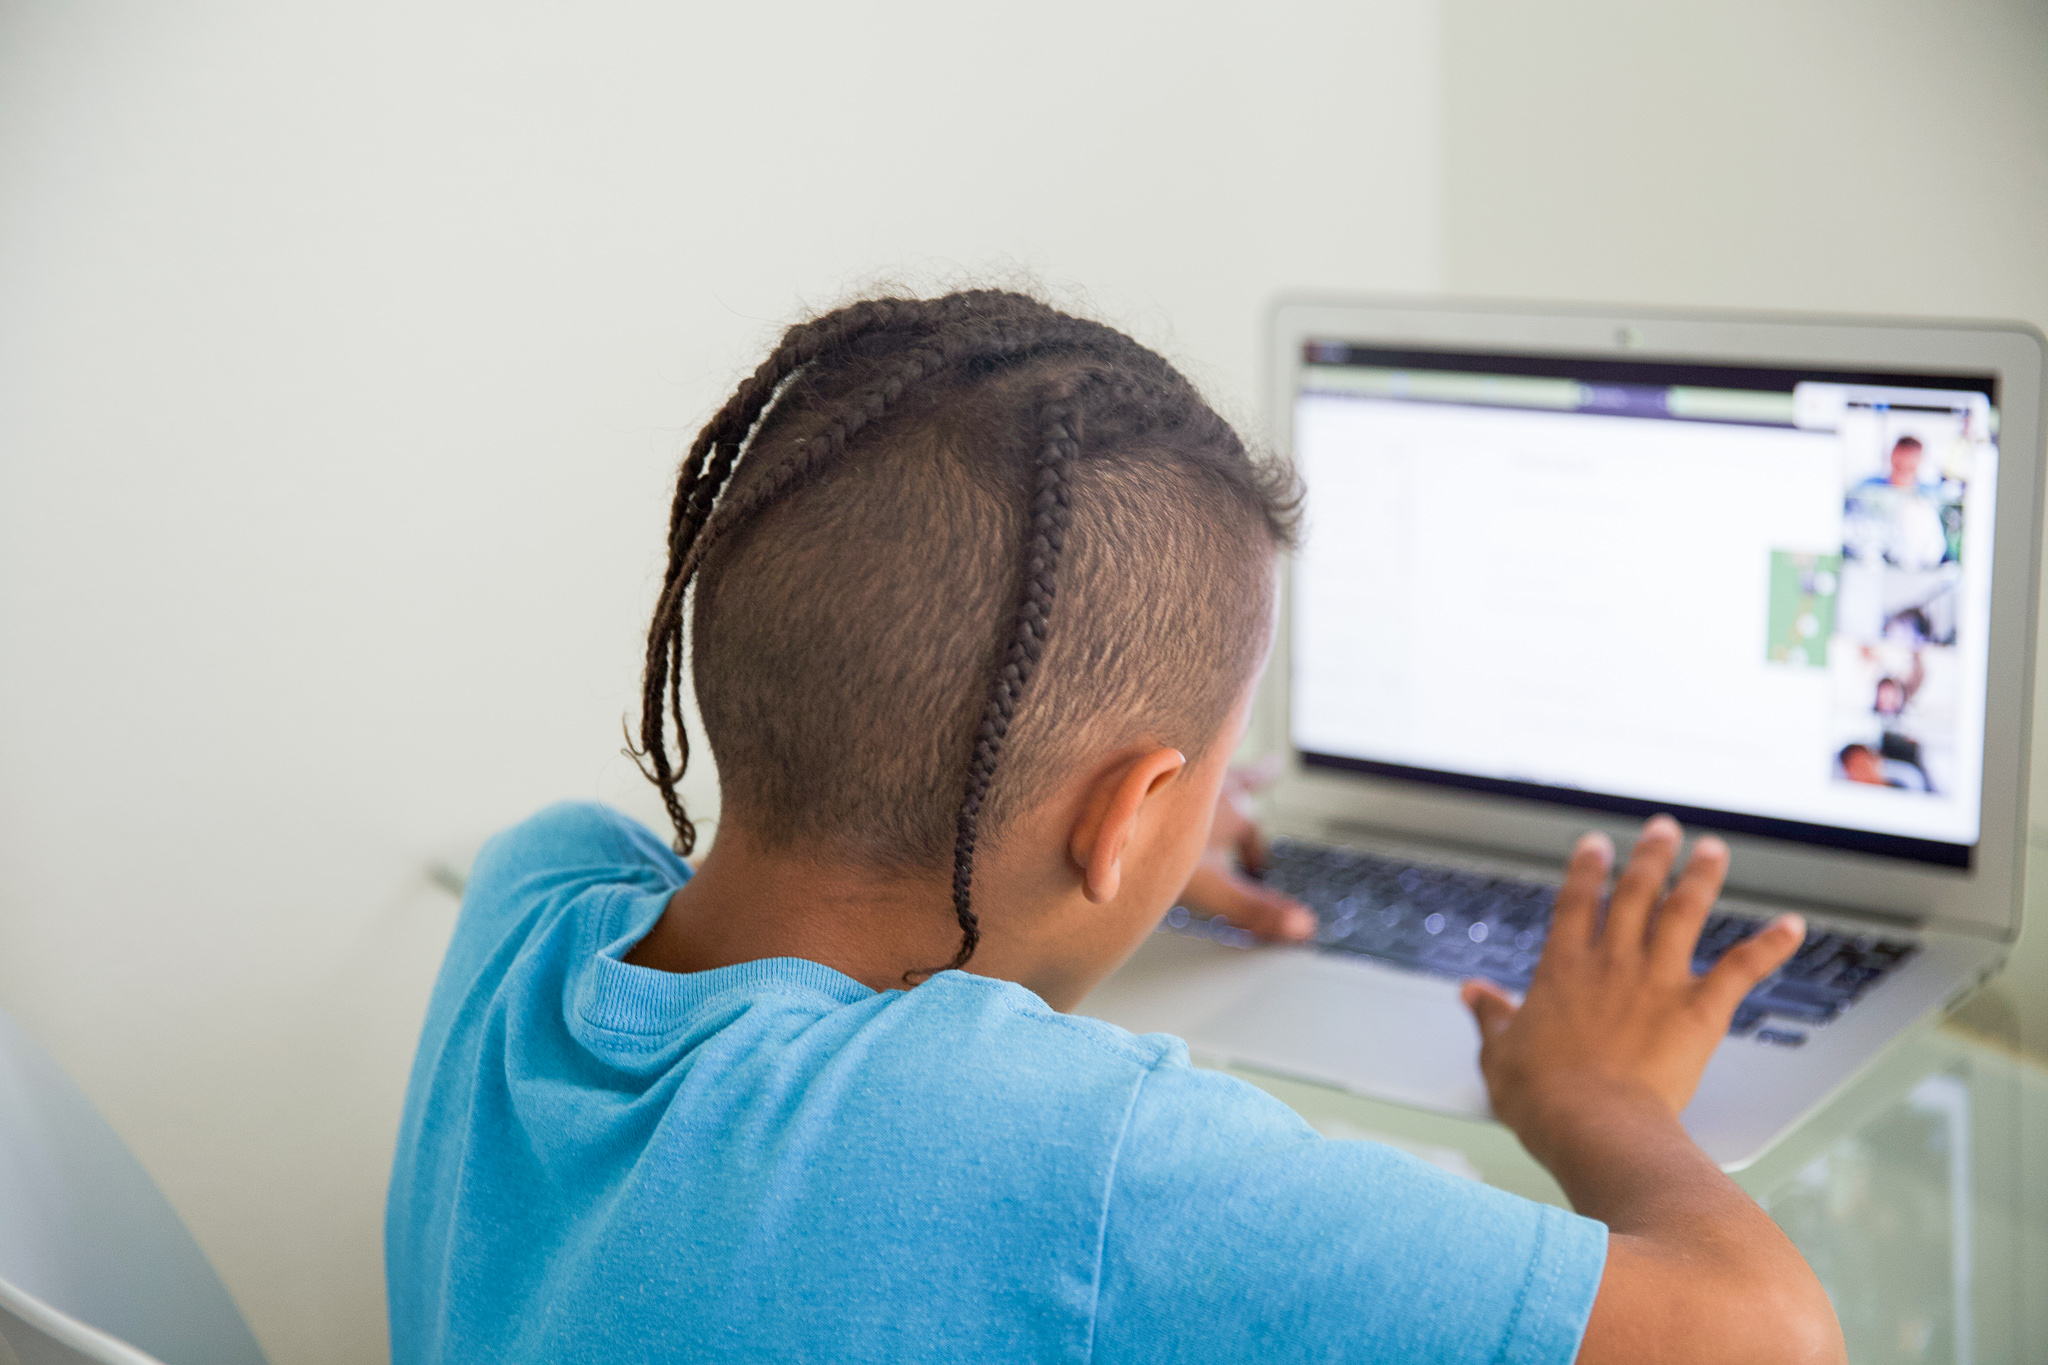 Learning Coding From Virtual Tech Camp